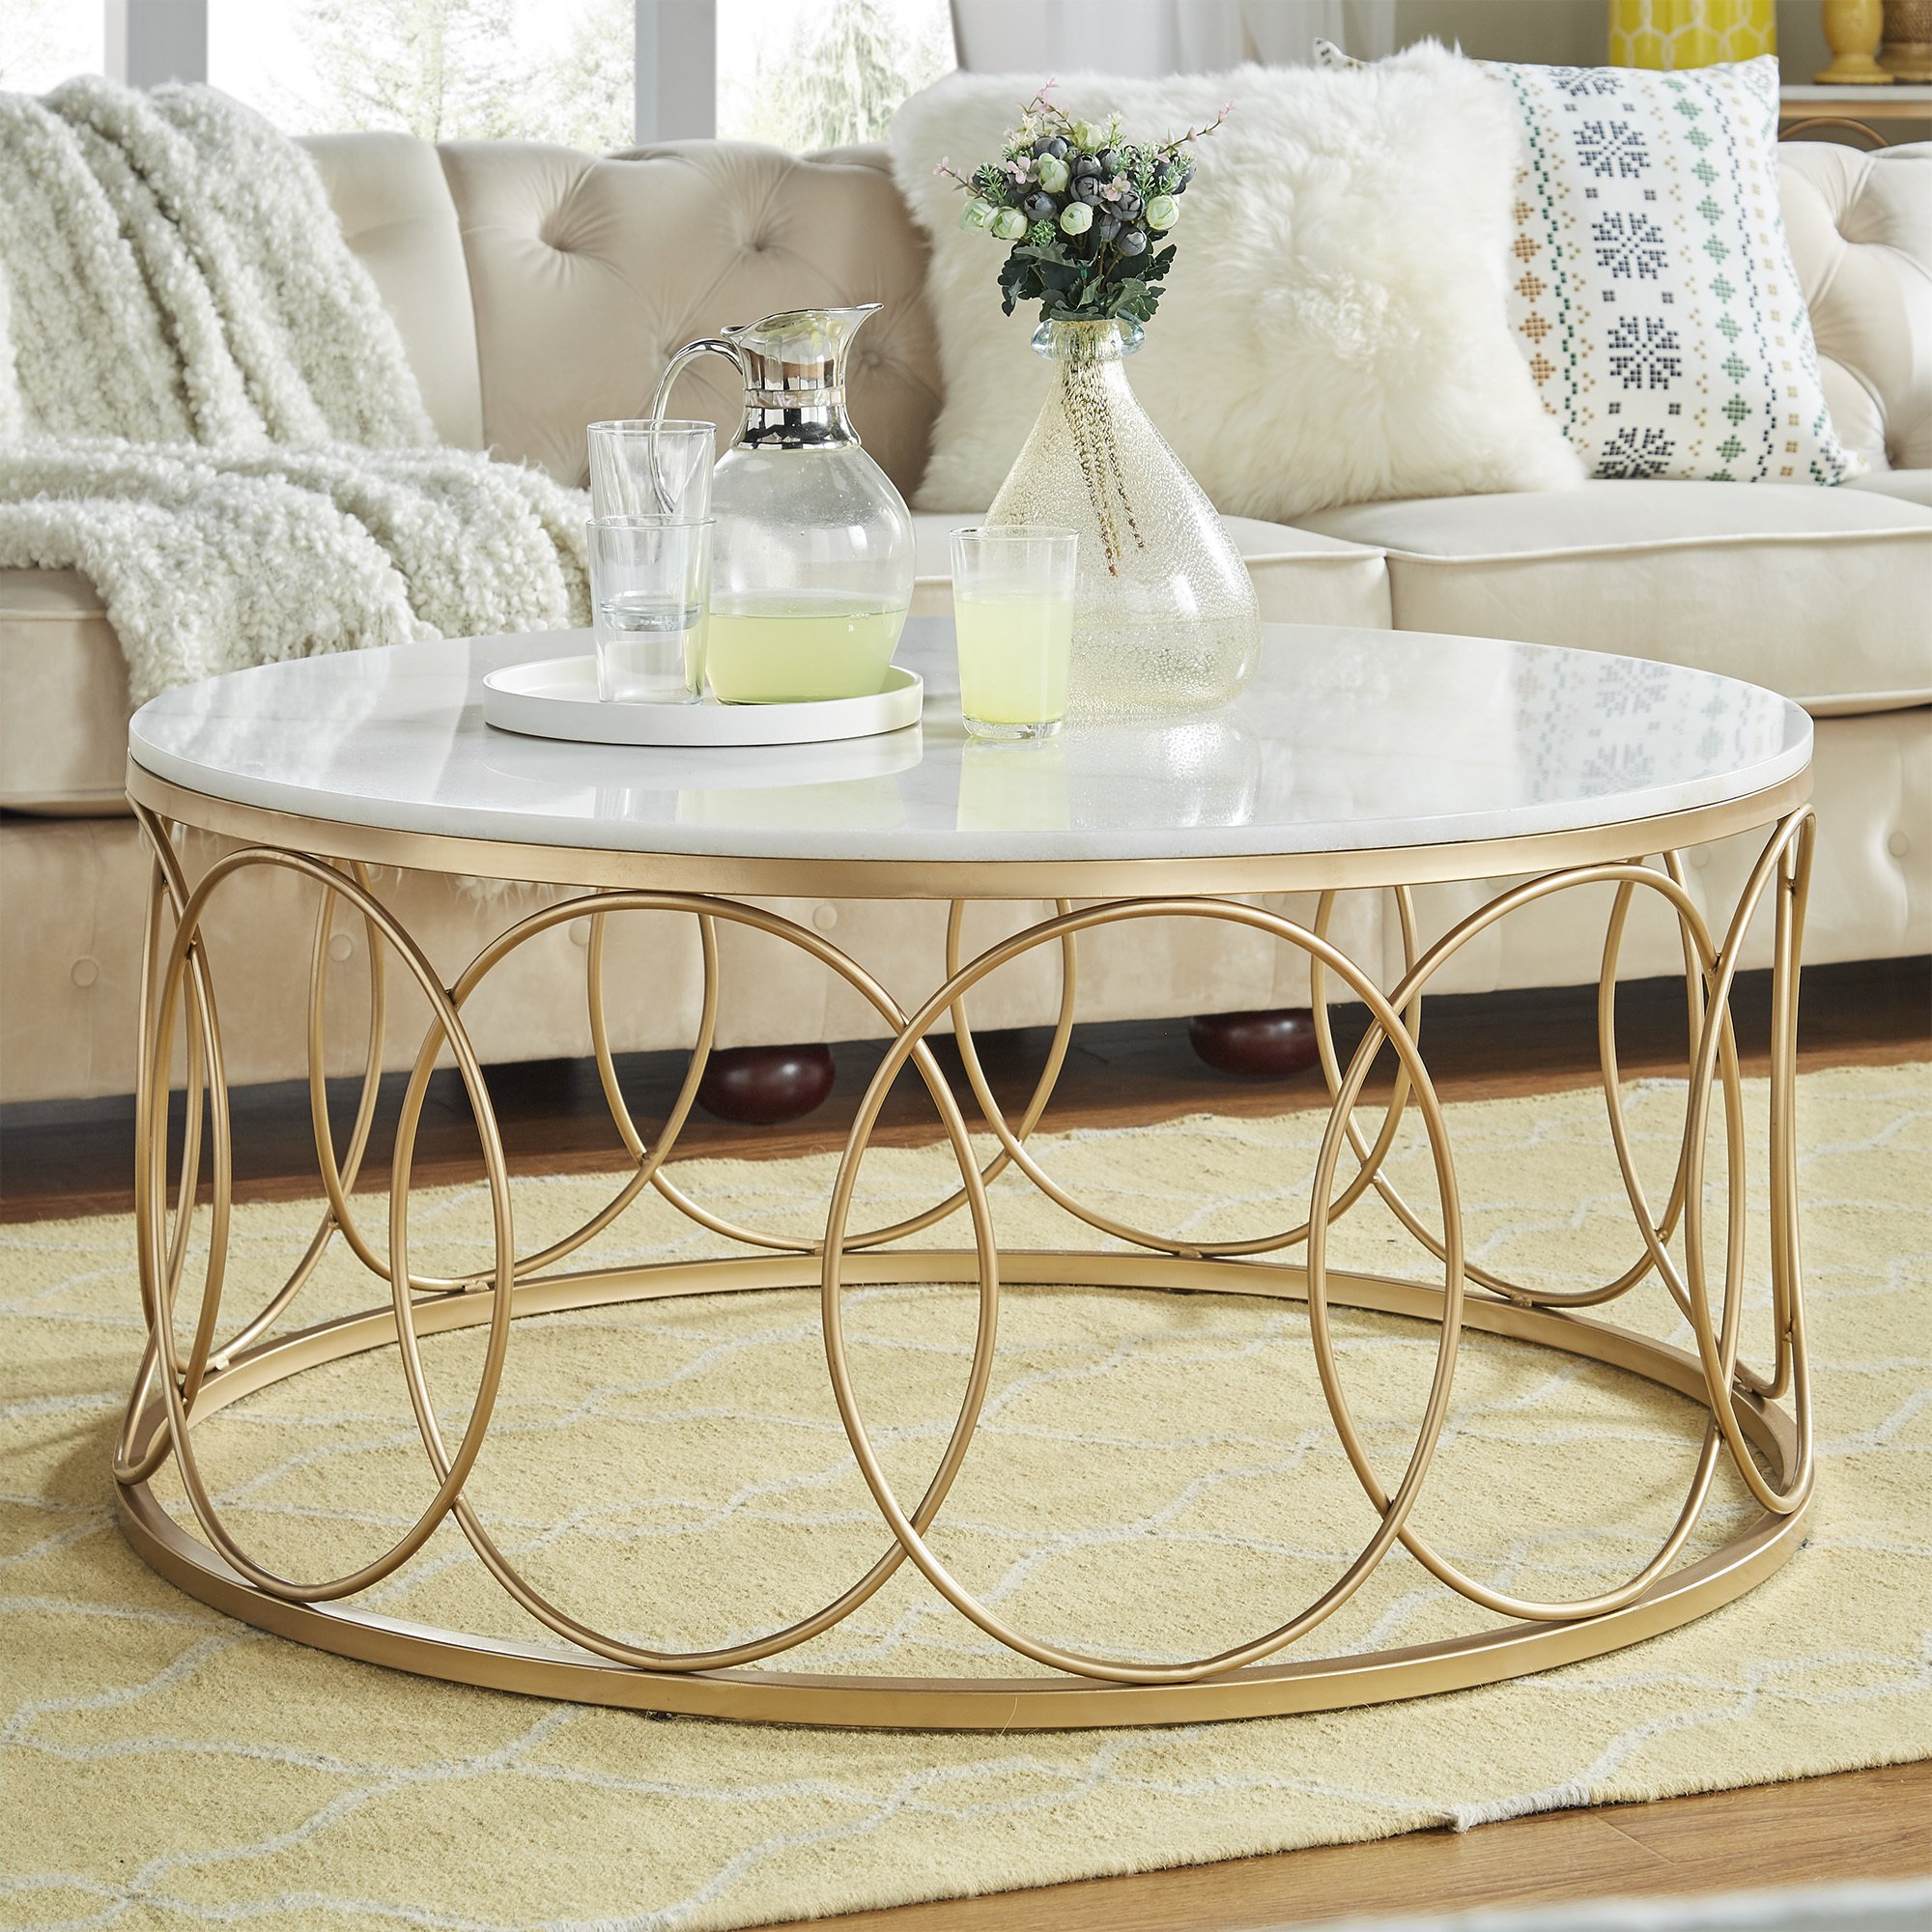 lynn round gold accent tables with marble tops inspire bold table free shipping today vaughan furniture small entryway cabinet square patio side mirage mirrored modern dressing